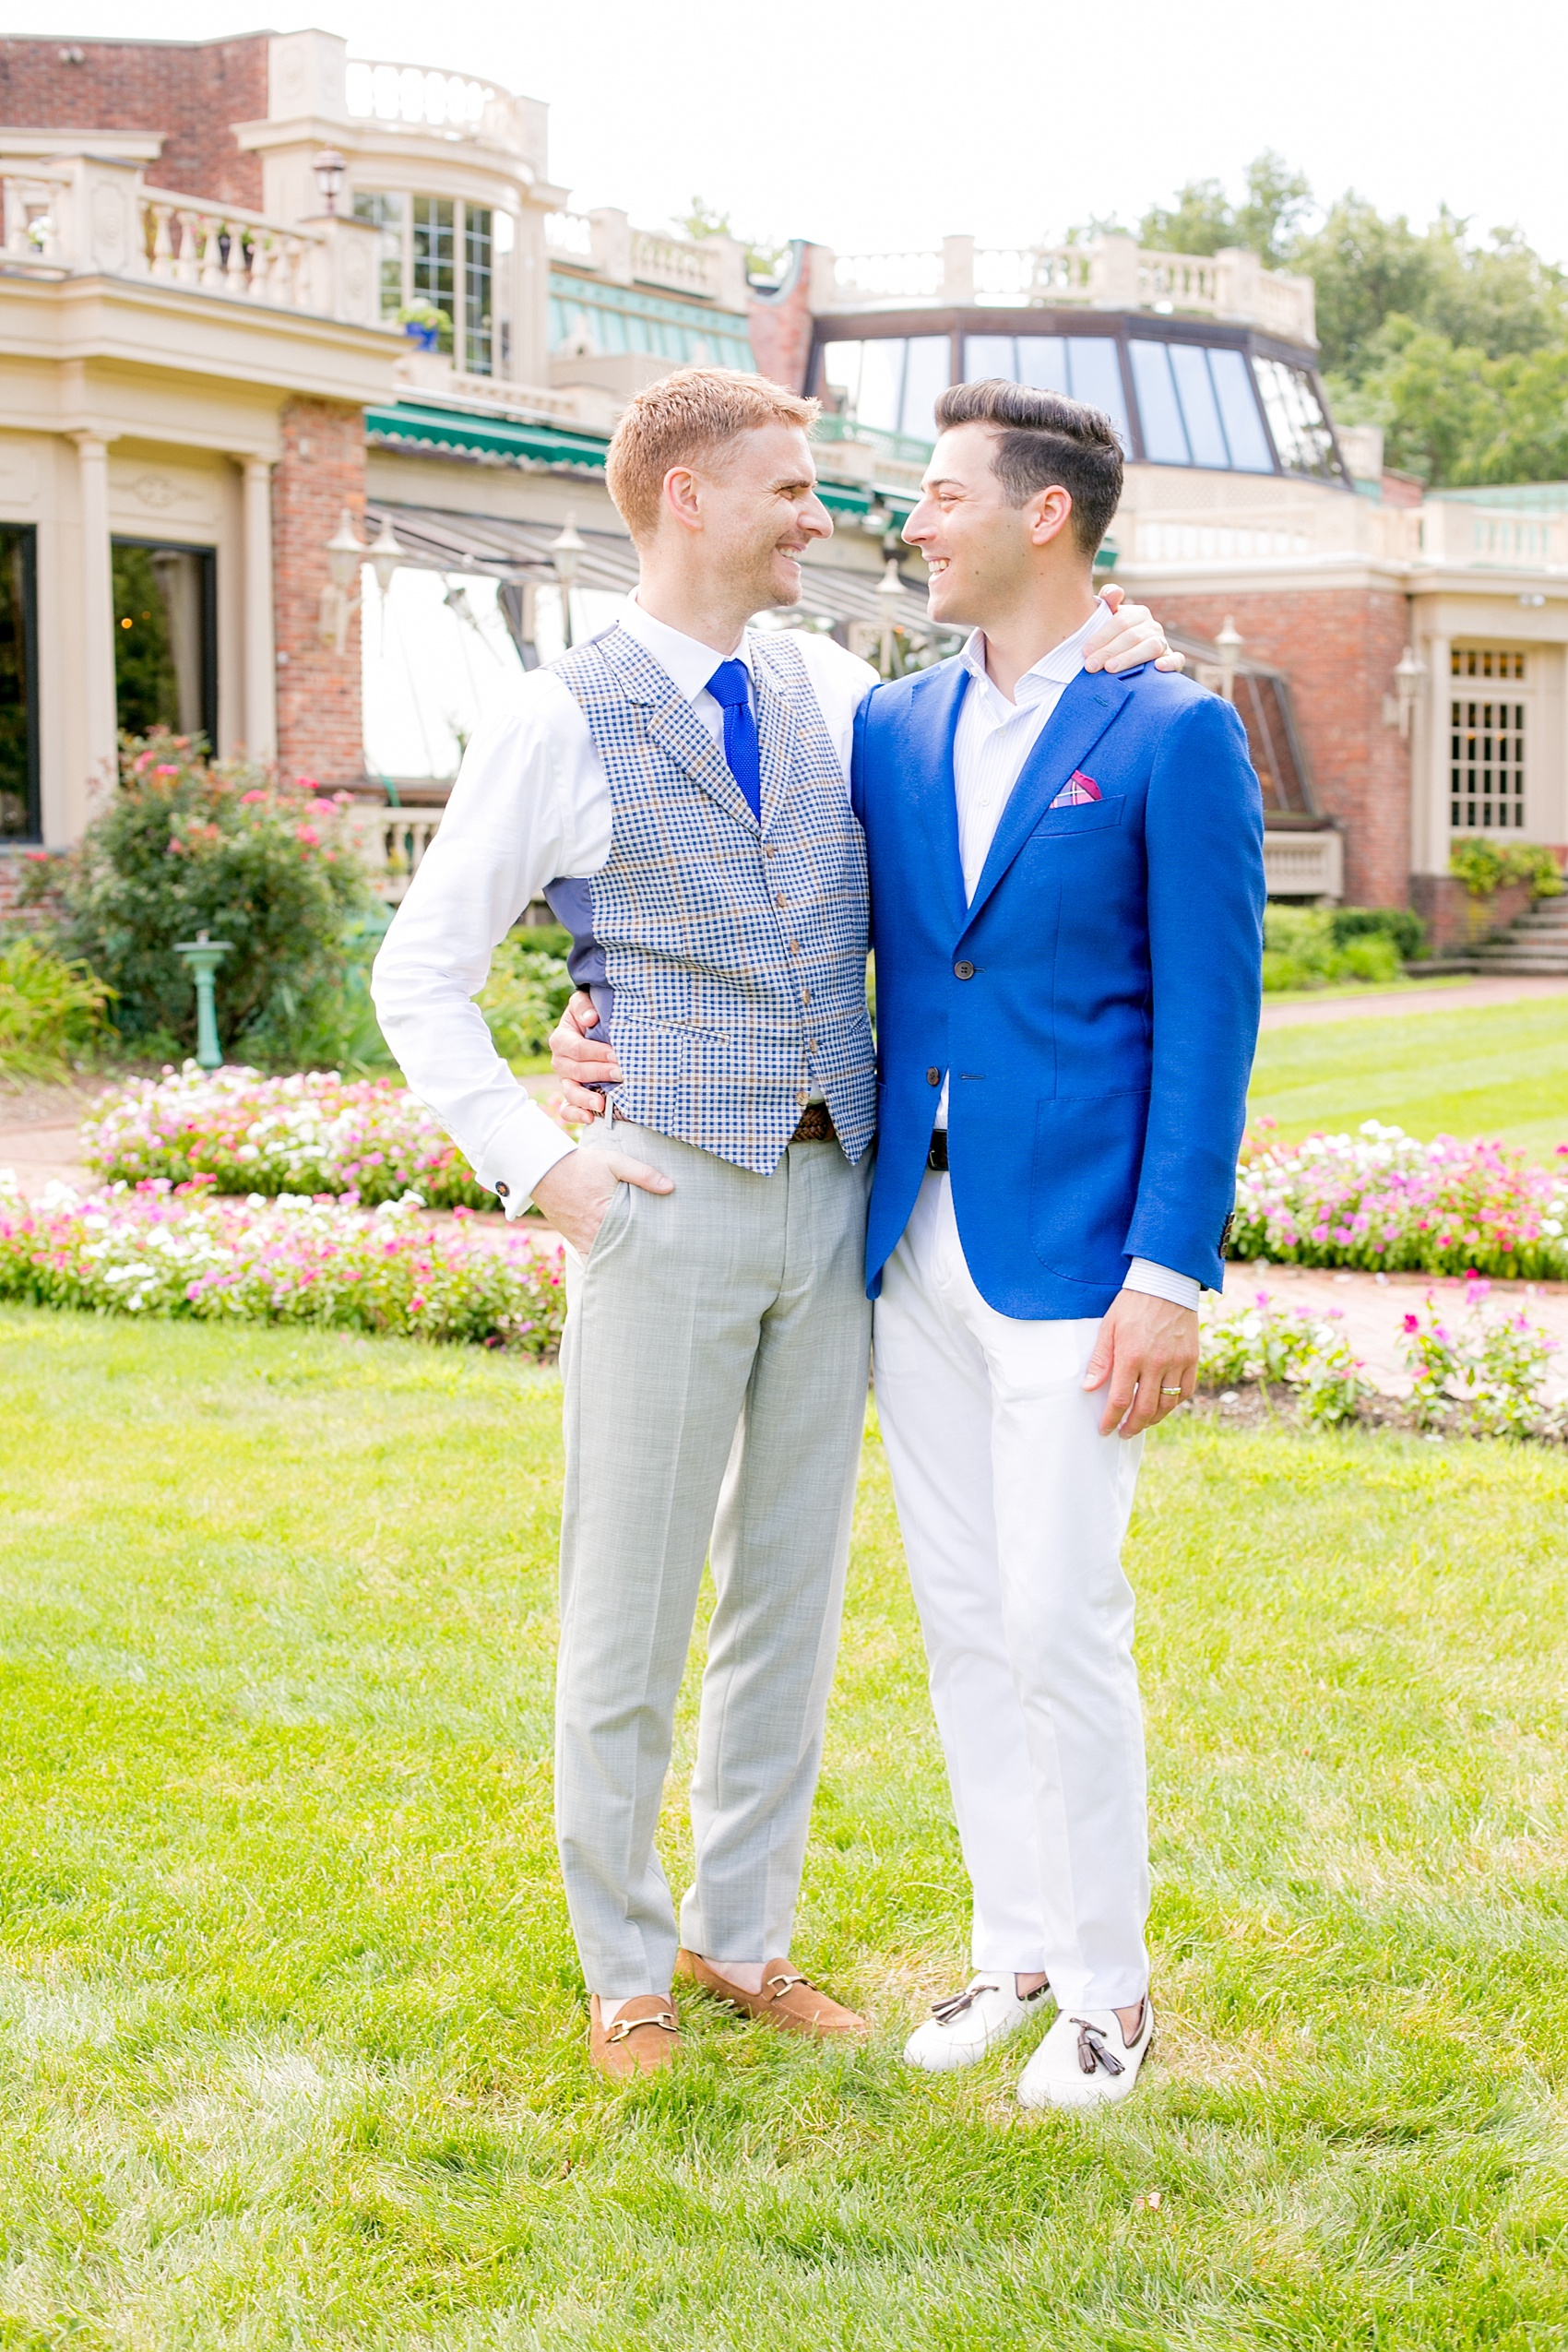 Mikkel Paige Photography photos of a summer, daytime gay wedding. An image of the grooms in a vest and blue suit in front of picturesque landscaping at The Manor, in West Orange New Jersey.